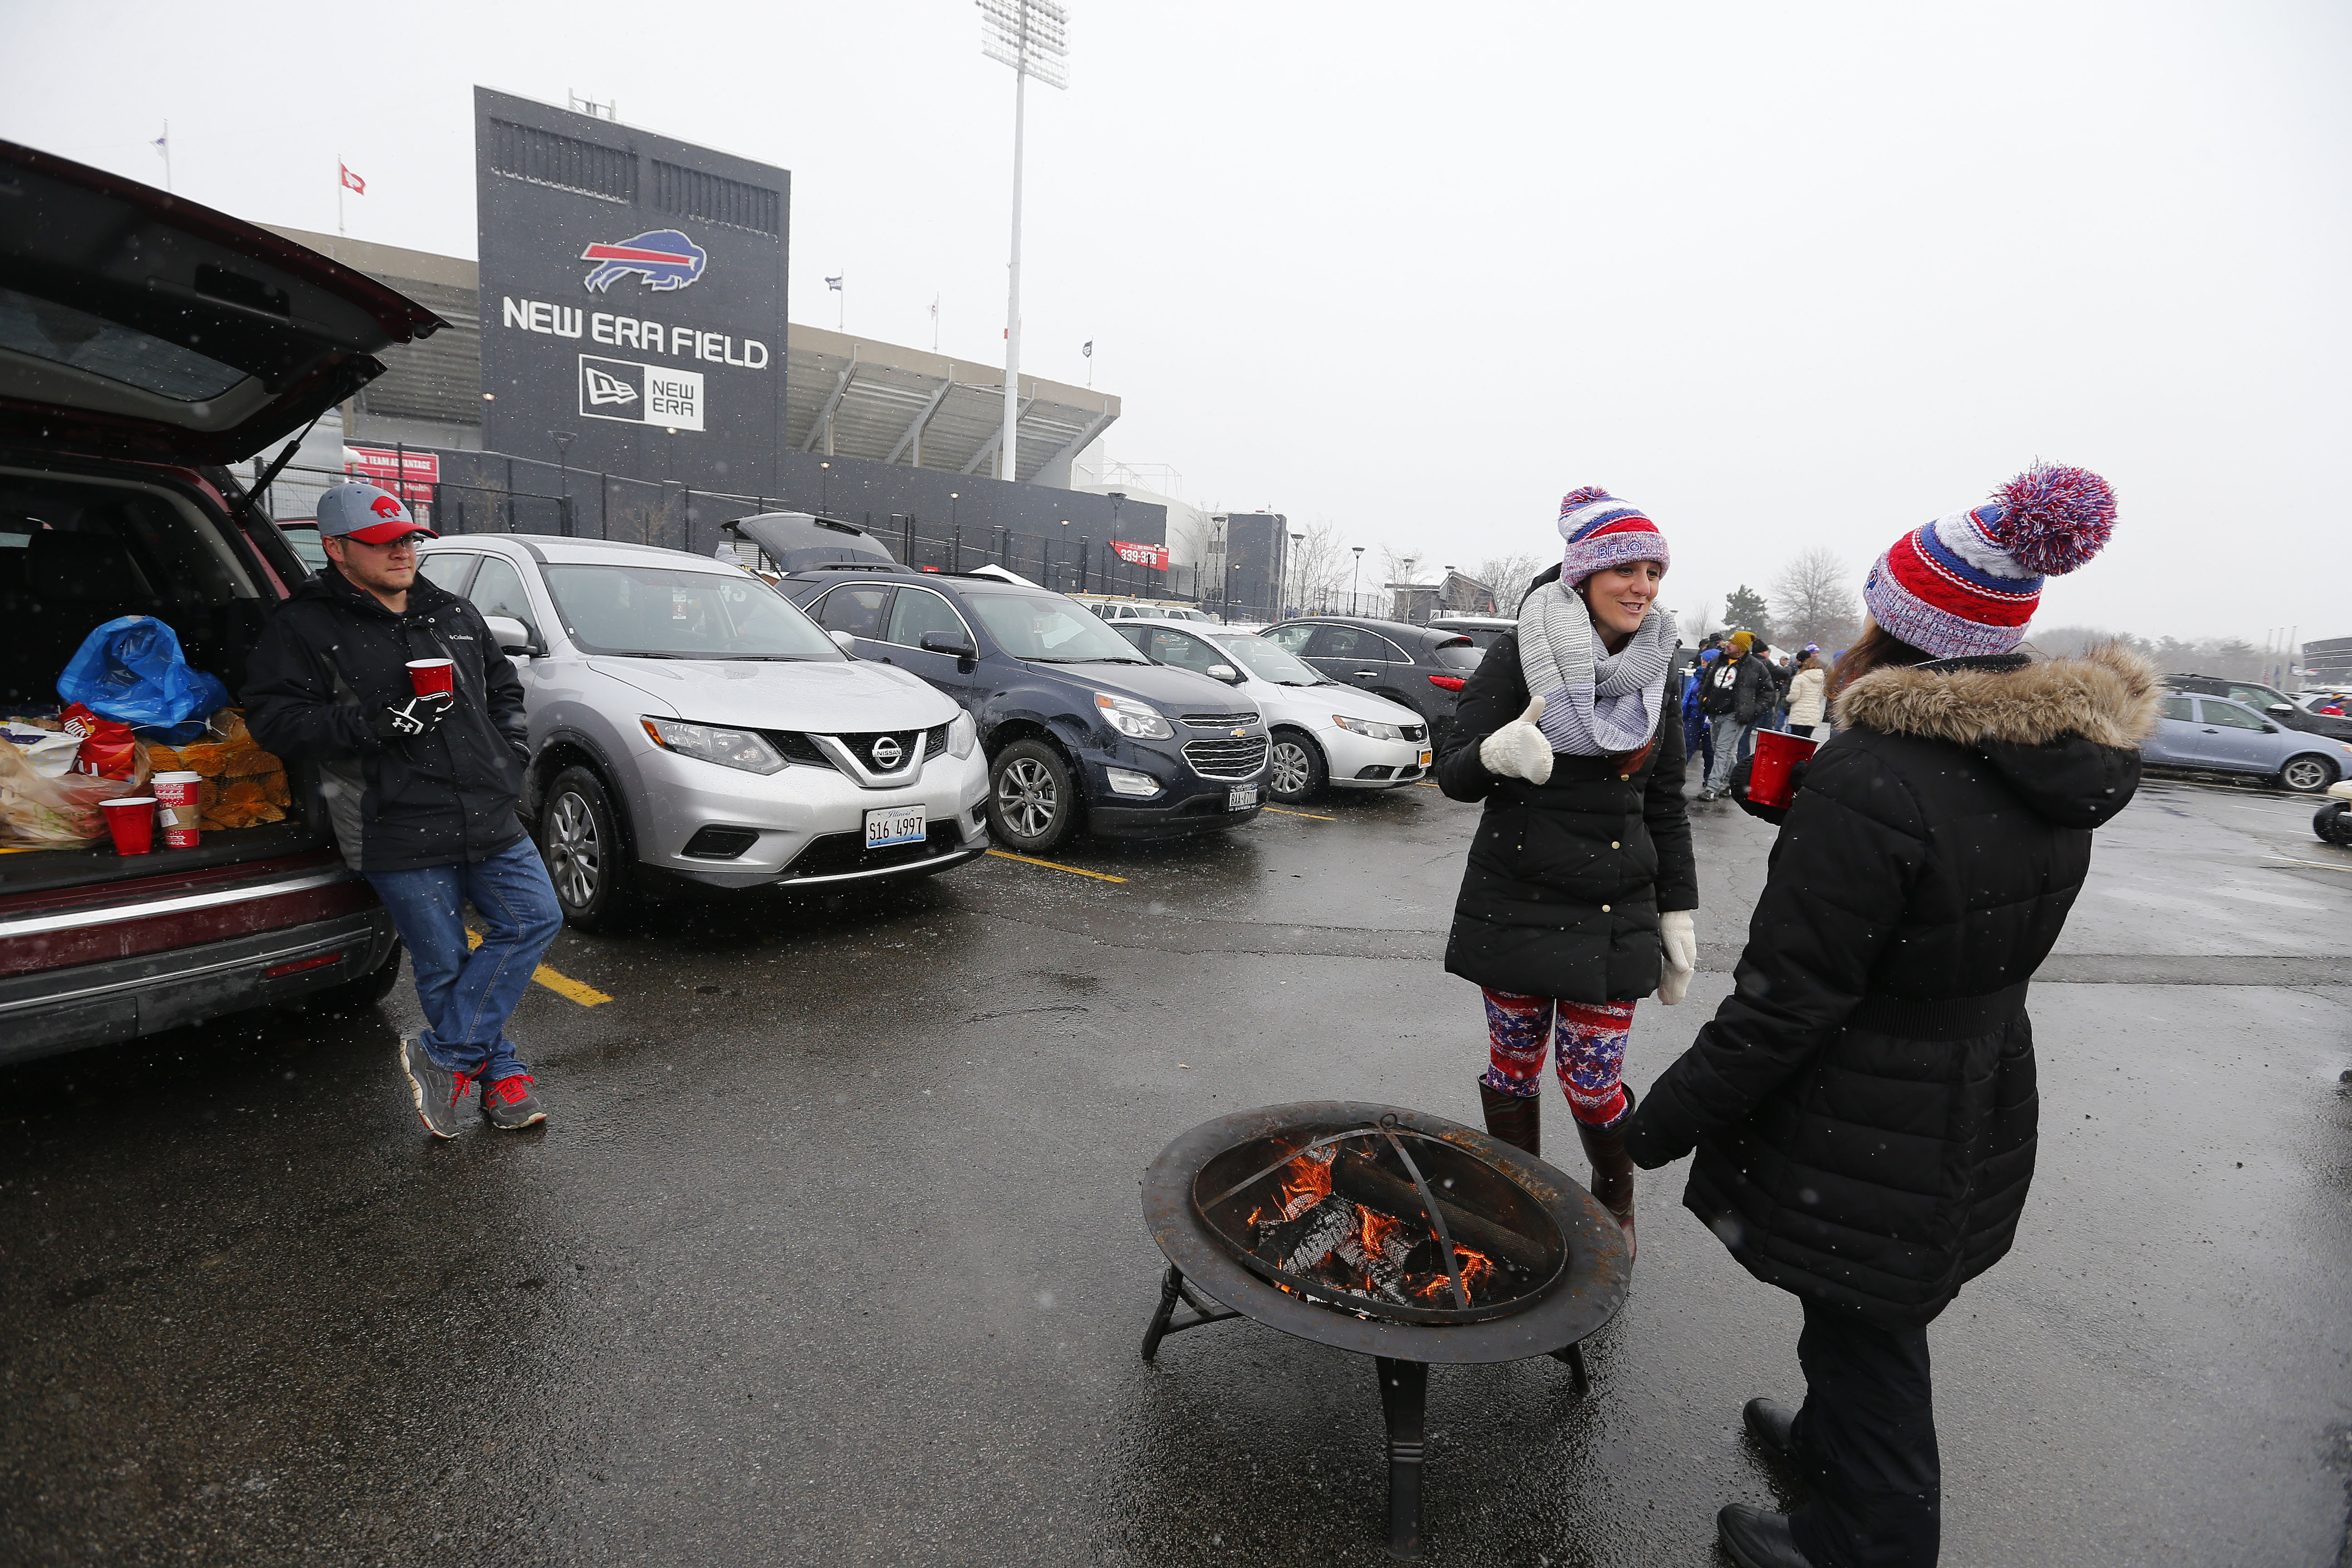 Matt Carlucci, left, Margaret Carlucci, center, and Diana Robbins, right, tailgate before the game with the Steelers at New Era Field in Orchard Park Sunday, December 11, 2016.    (Mark Mulville/The Buffalo News)